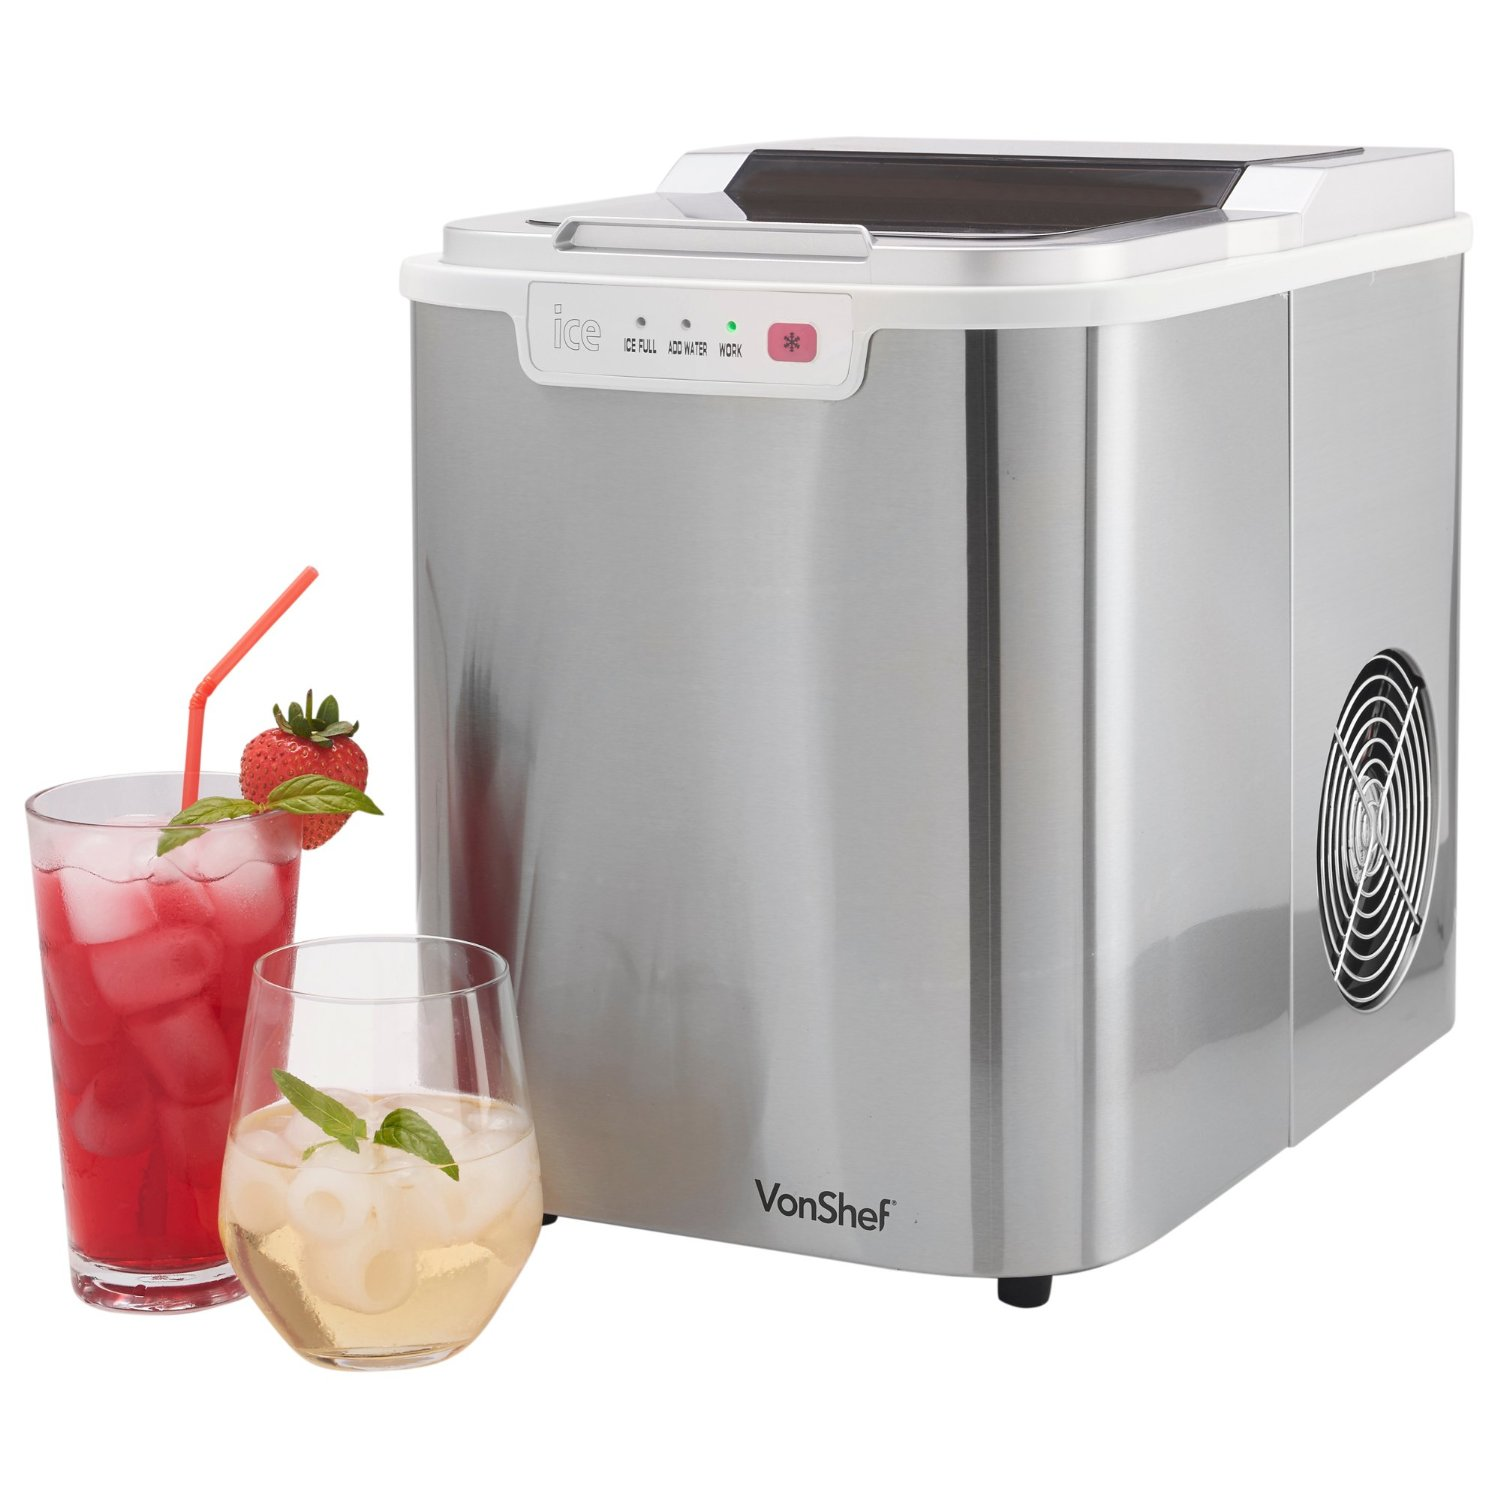 The VonShef Electrical Compact Counter Top Ice Maker Machine